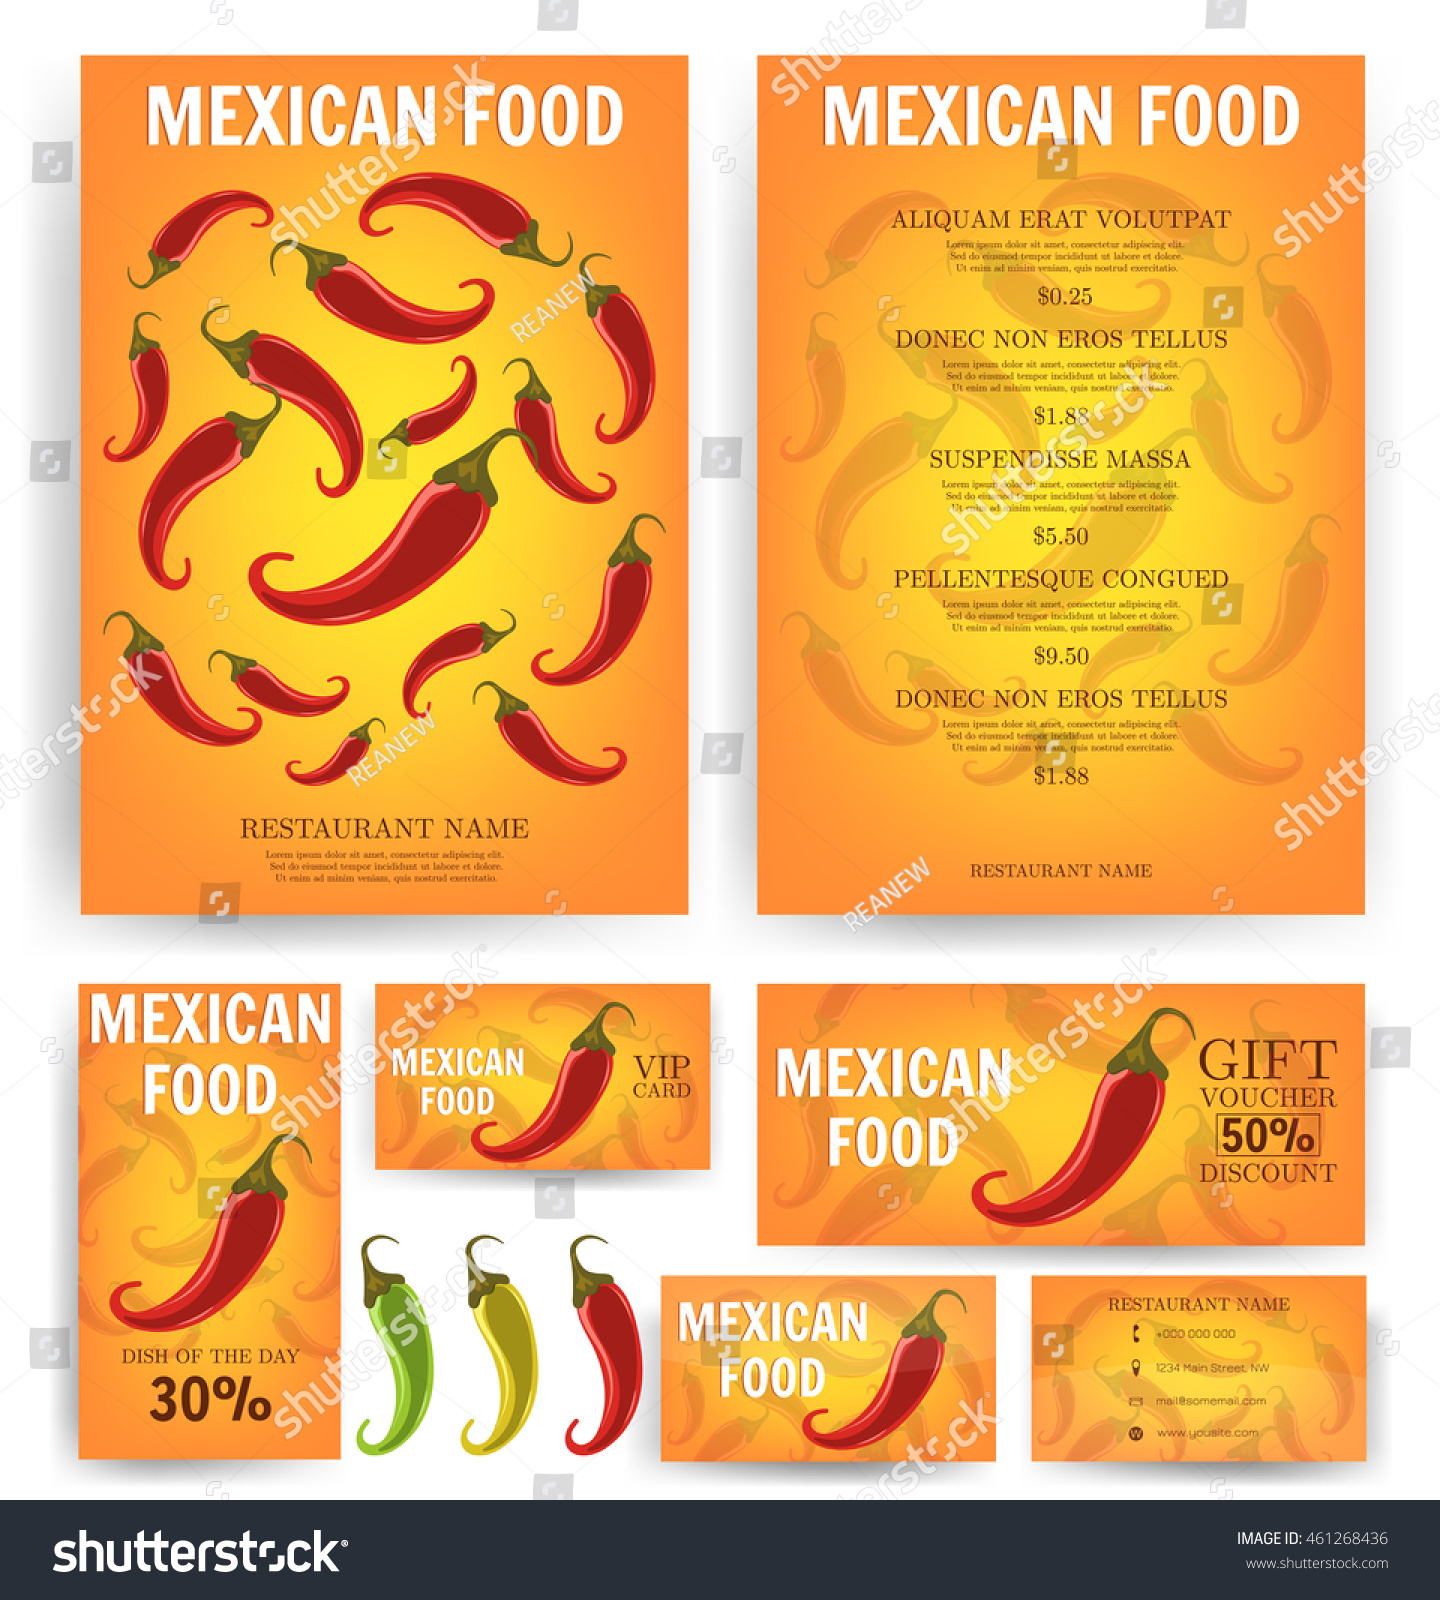 mexican food mexican restaurant menu template stock vector (royalty